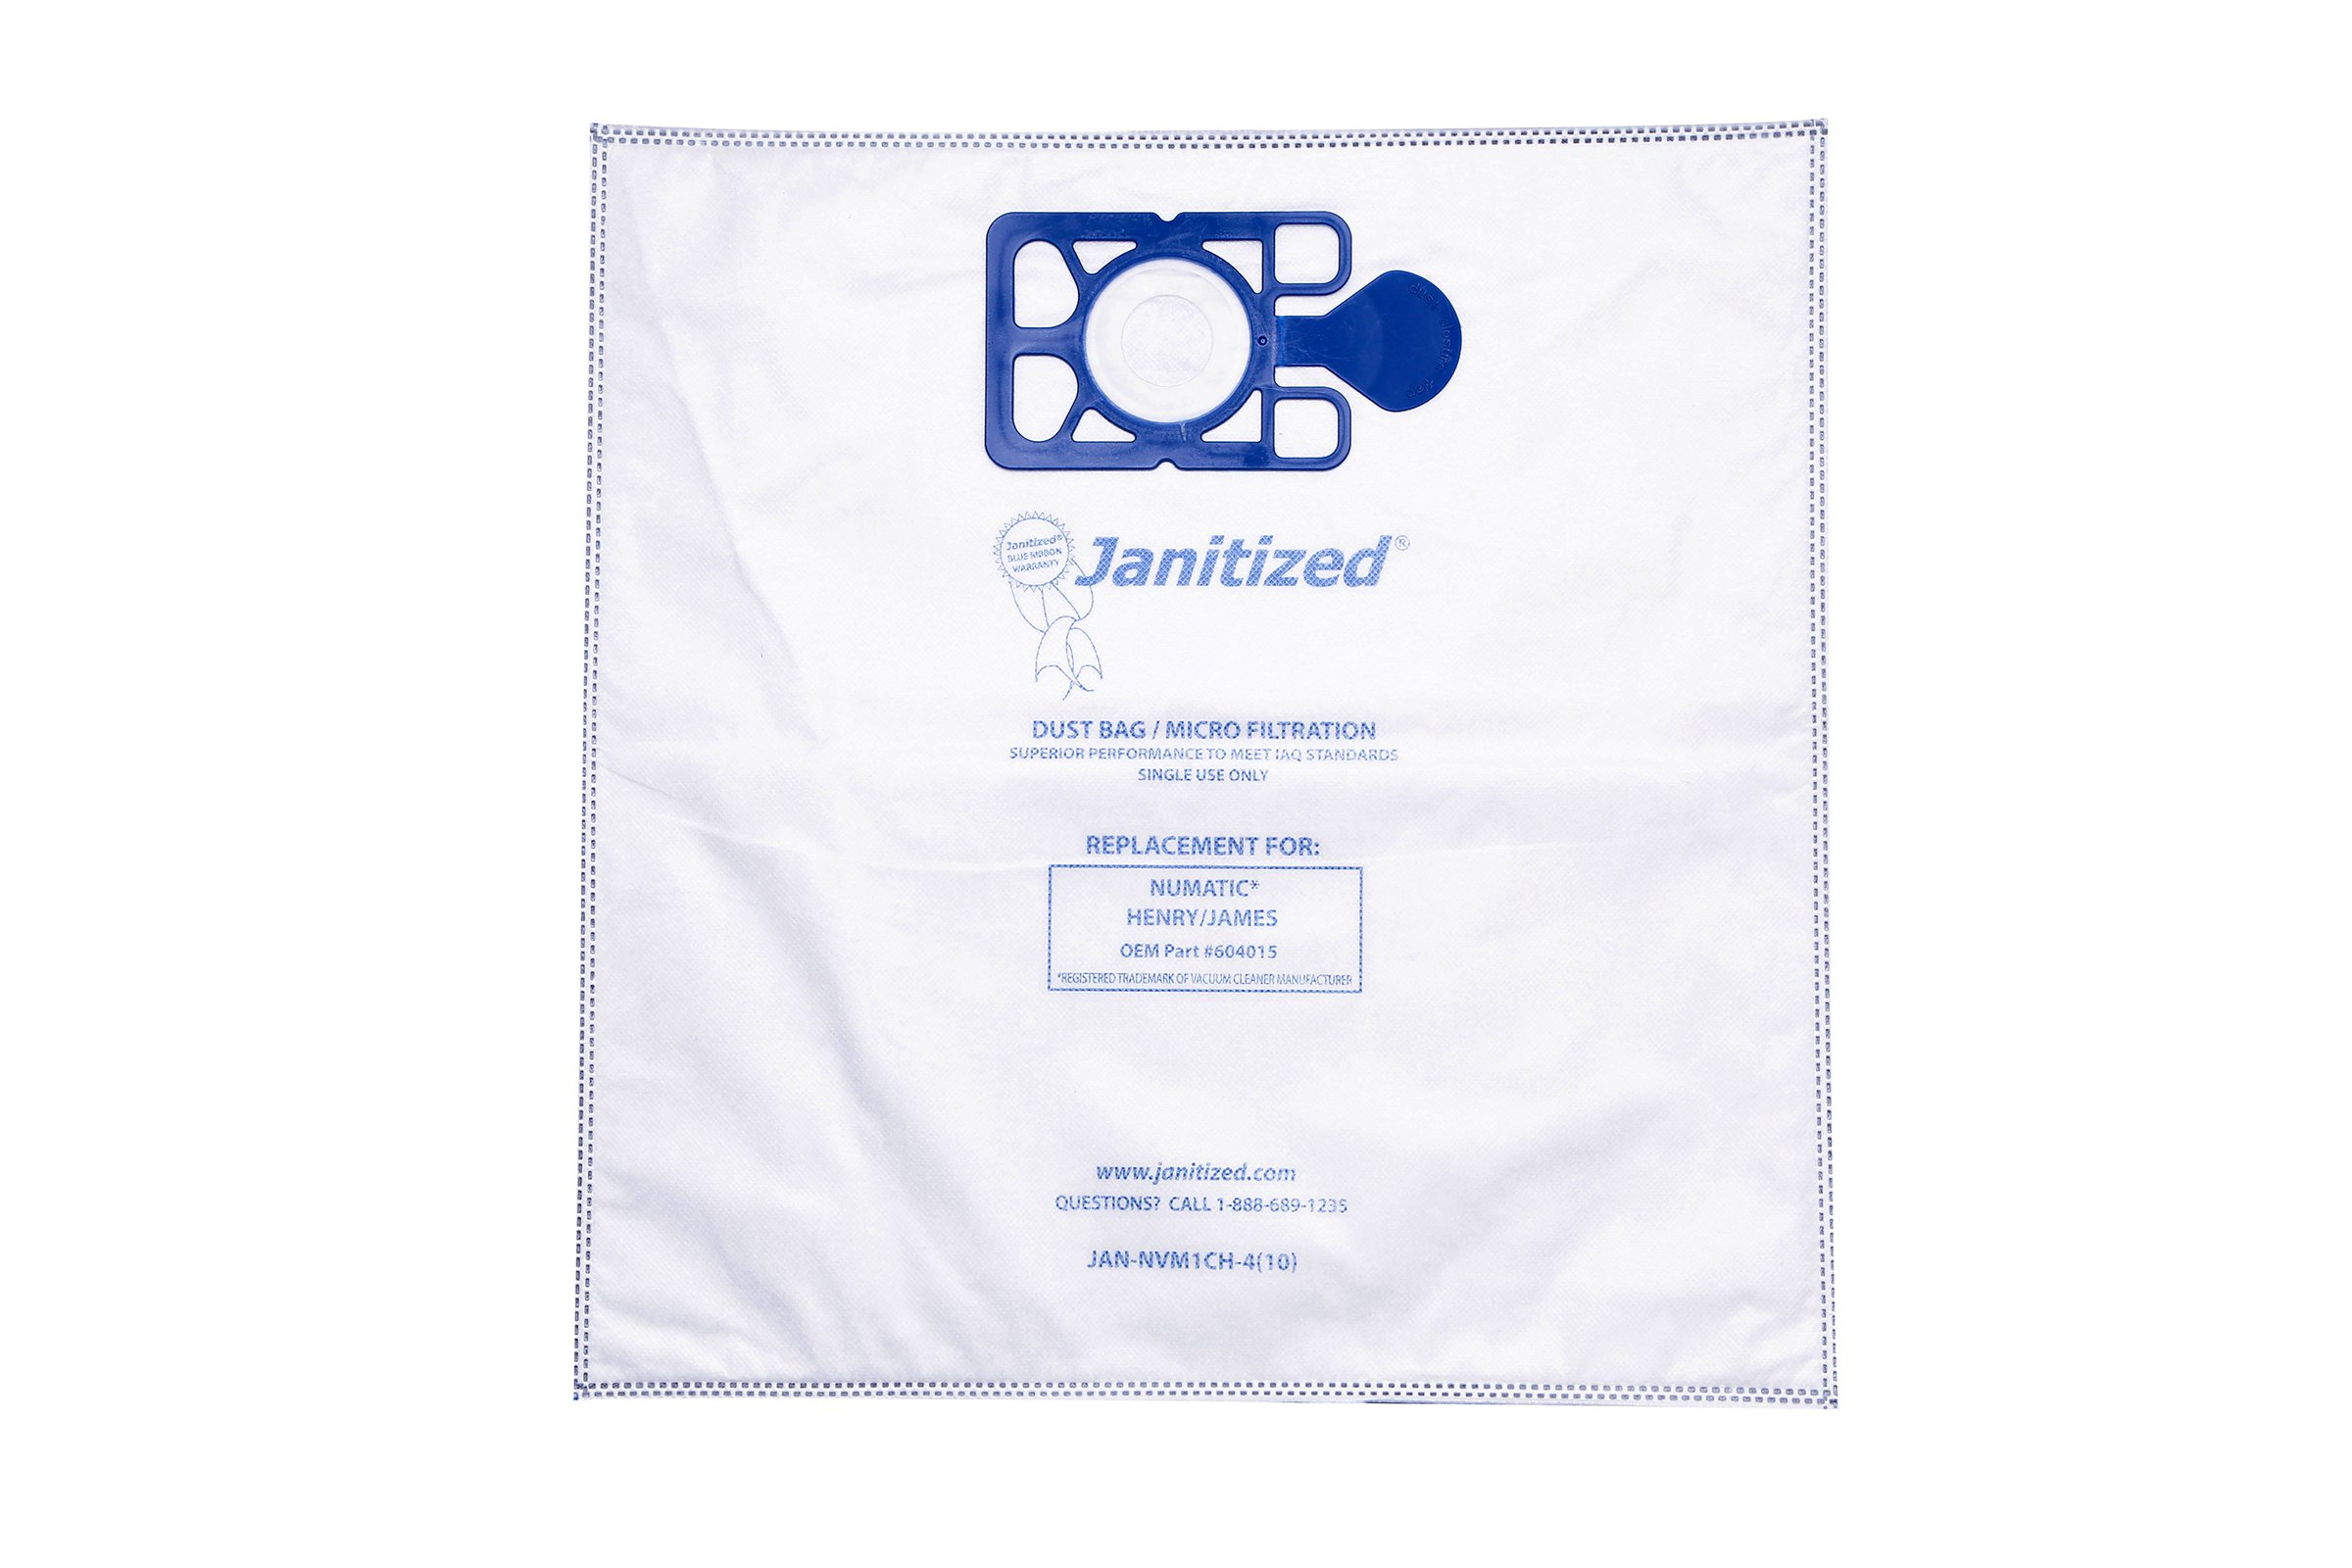 Janitized JAN-NVM1CH-4(10) High Efficiency Premium Replacement Commercial Vacuum Bag for Nacecare & Numatic Henry/James Vac bag for models 200, 225, 235, 250, 252 & 260 Vacuum Cleaners (Case of 100)